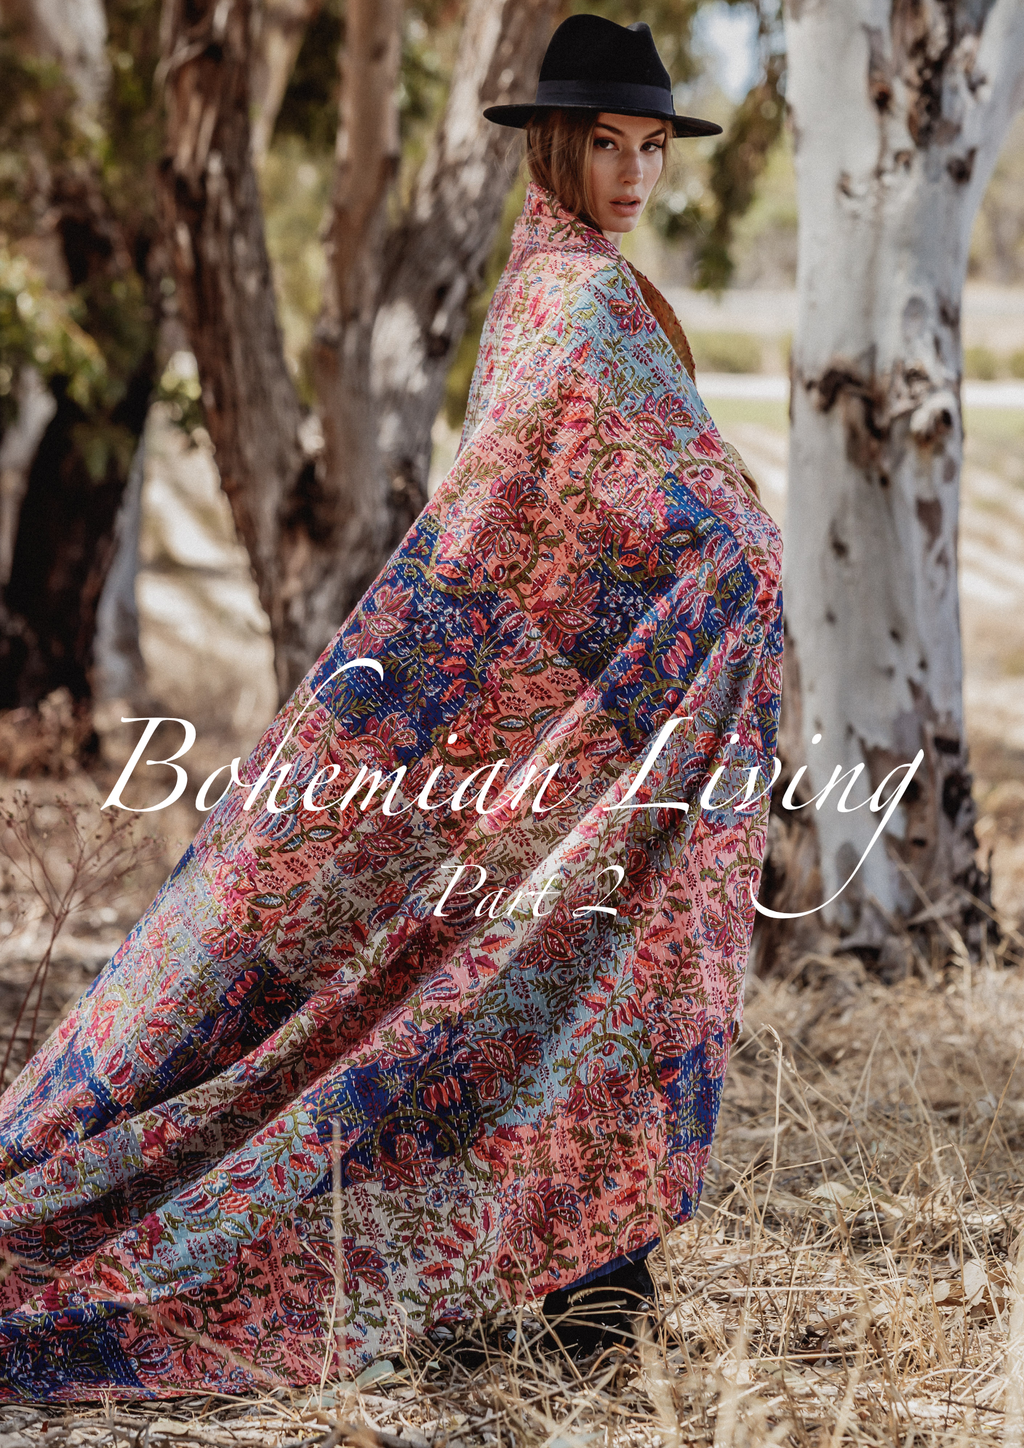 Collection Reveal: Bohemian Living Part 2